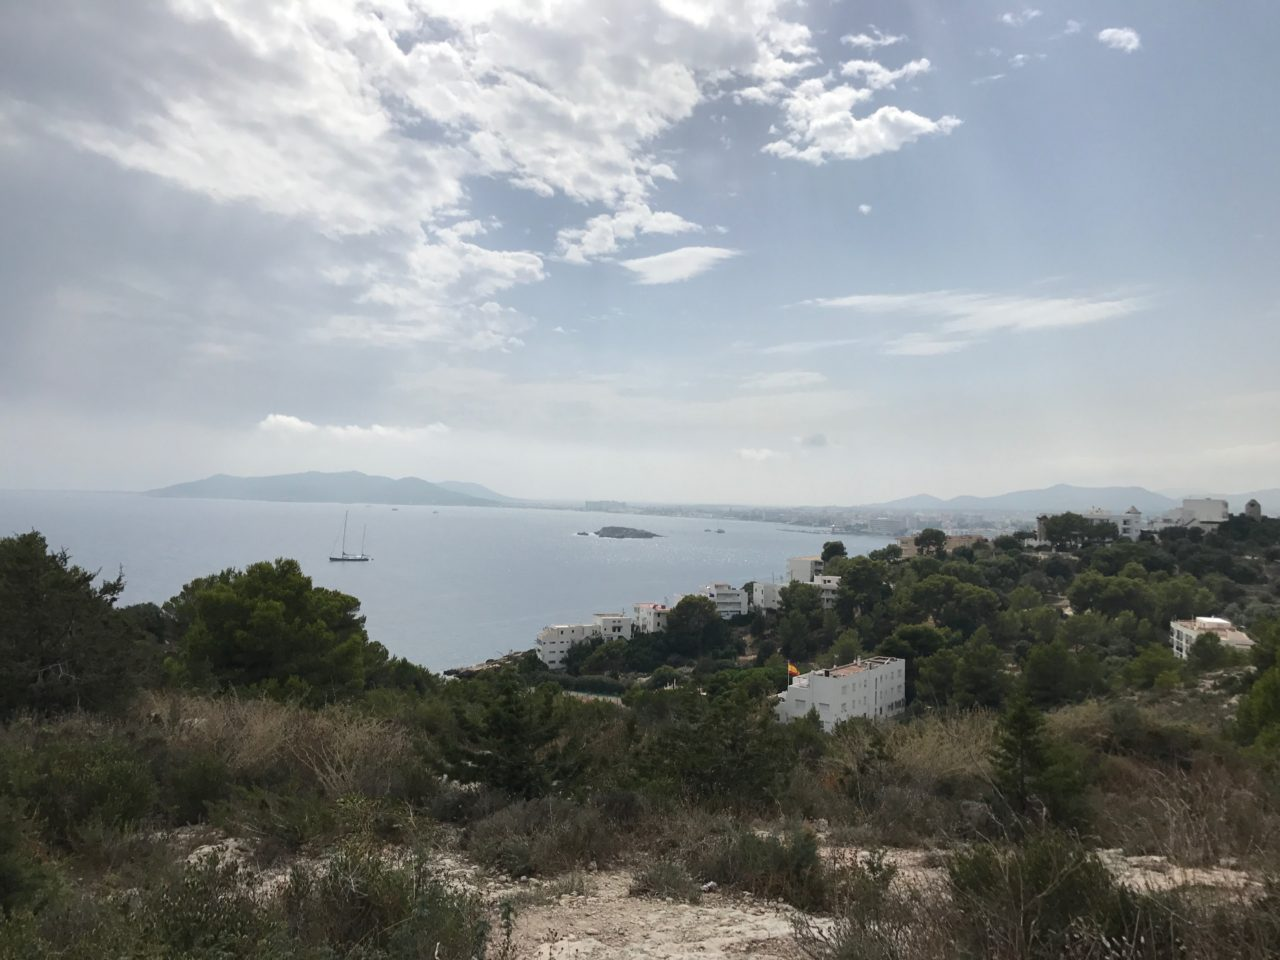 Mountain Top View Of The Ocean And A Few Houses